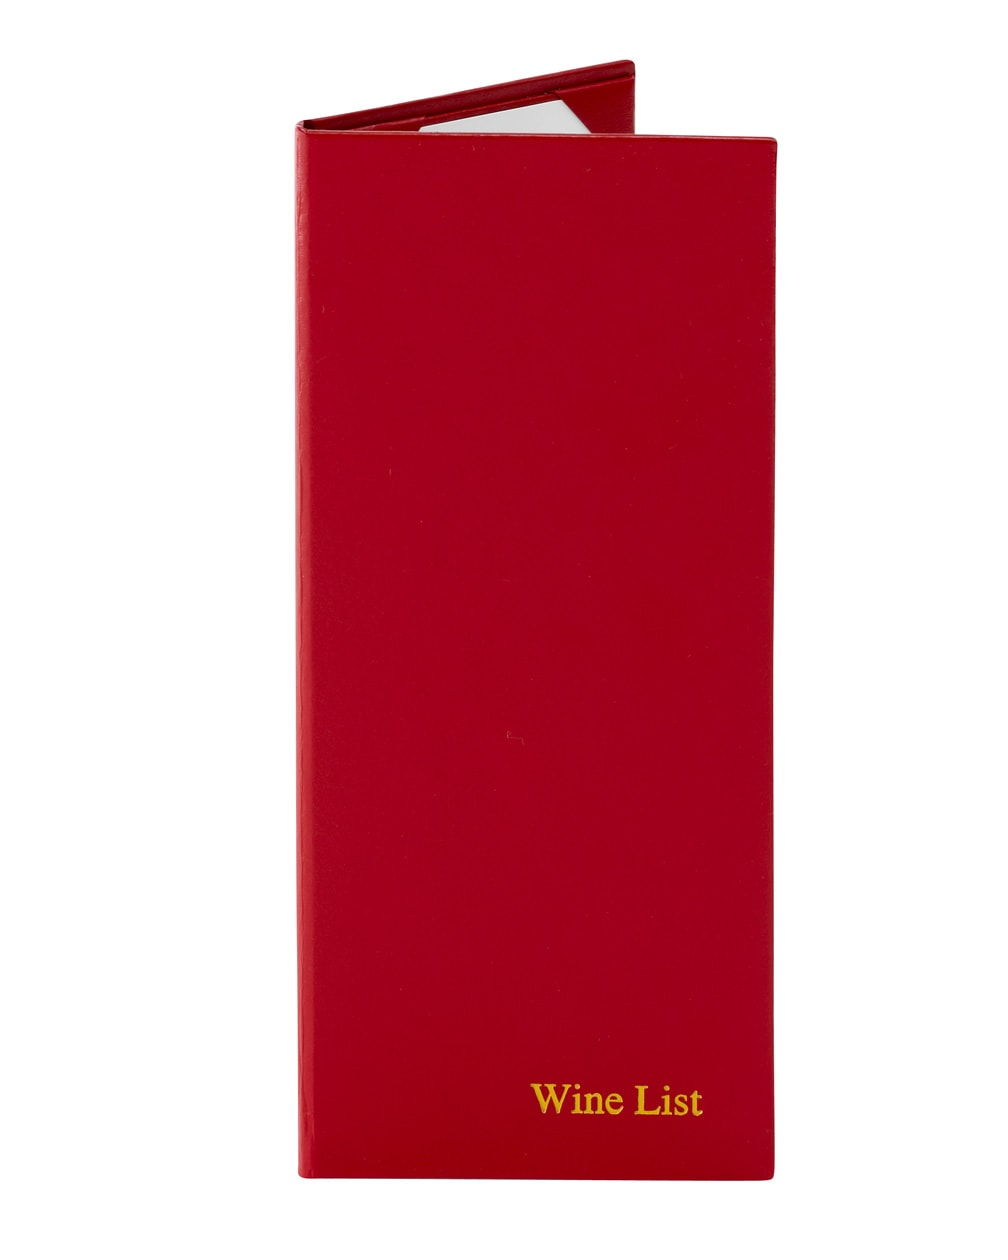 Standard Hardcover Menu Cover, red color